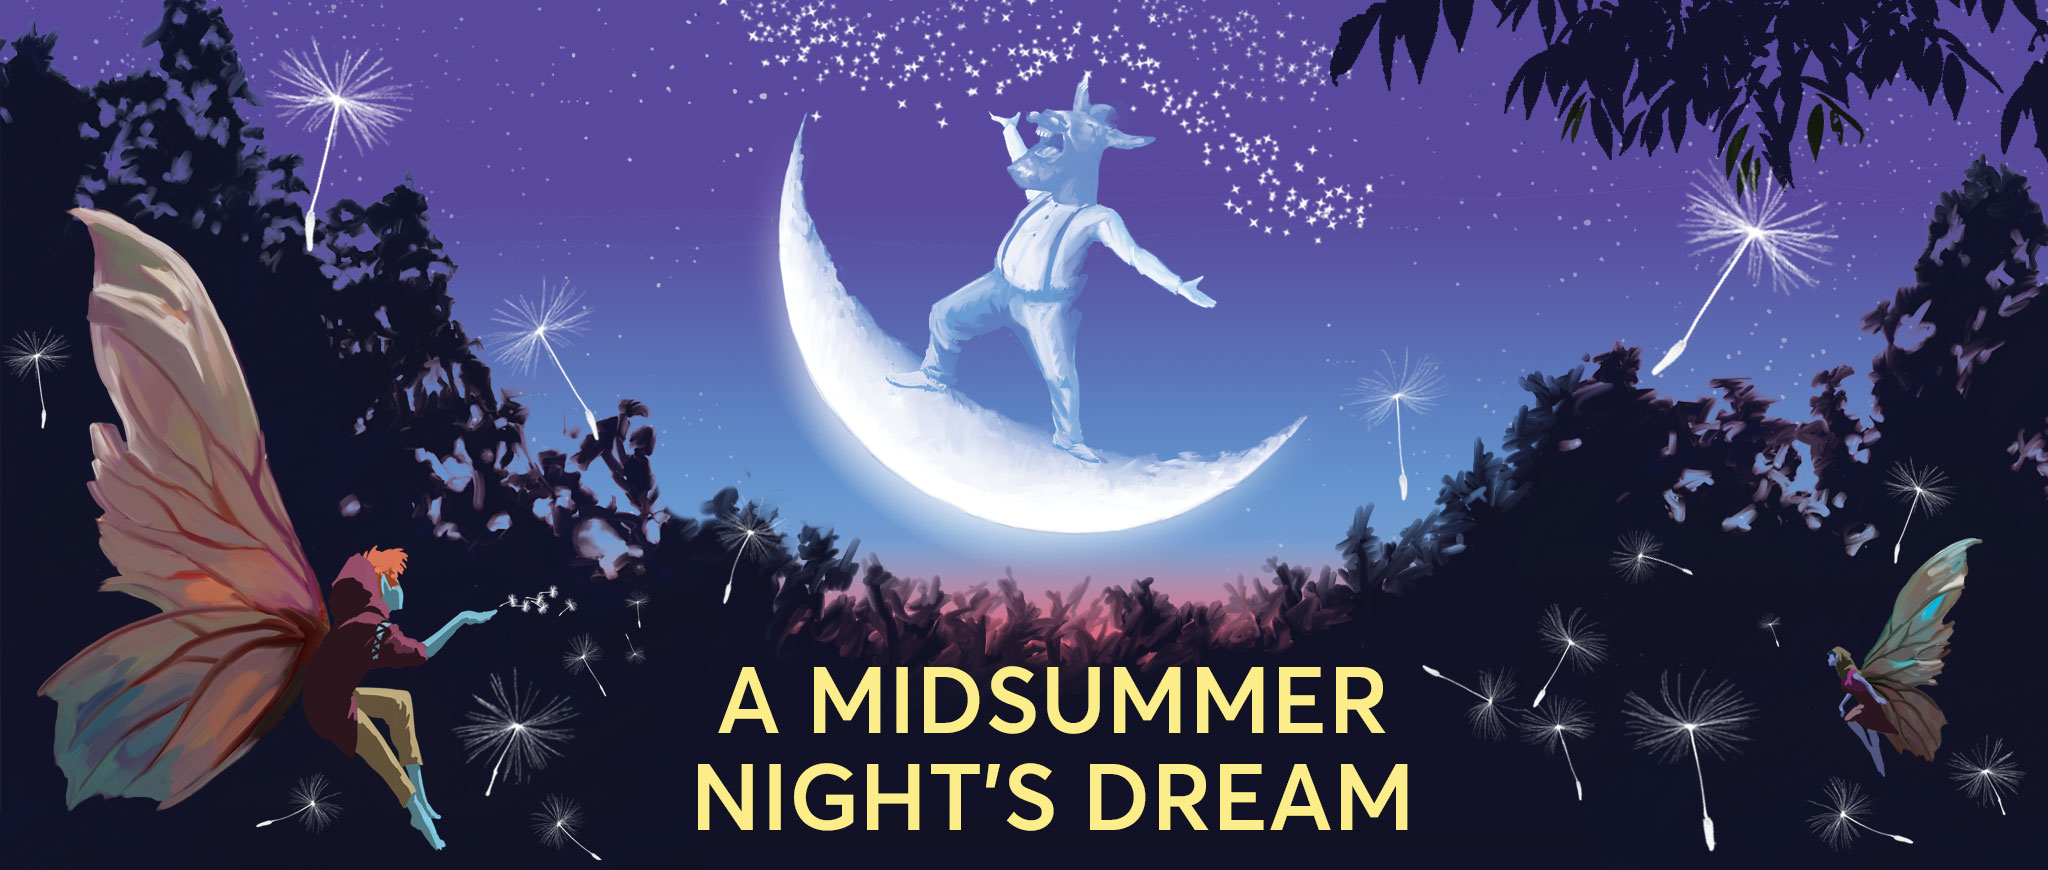 Oregon Shakespeare Festival - A Midsummer Night's Dream